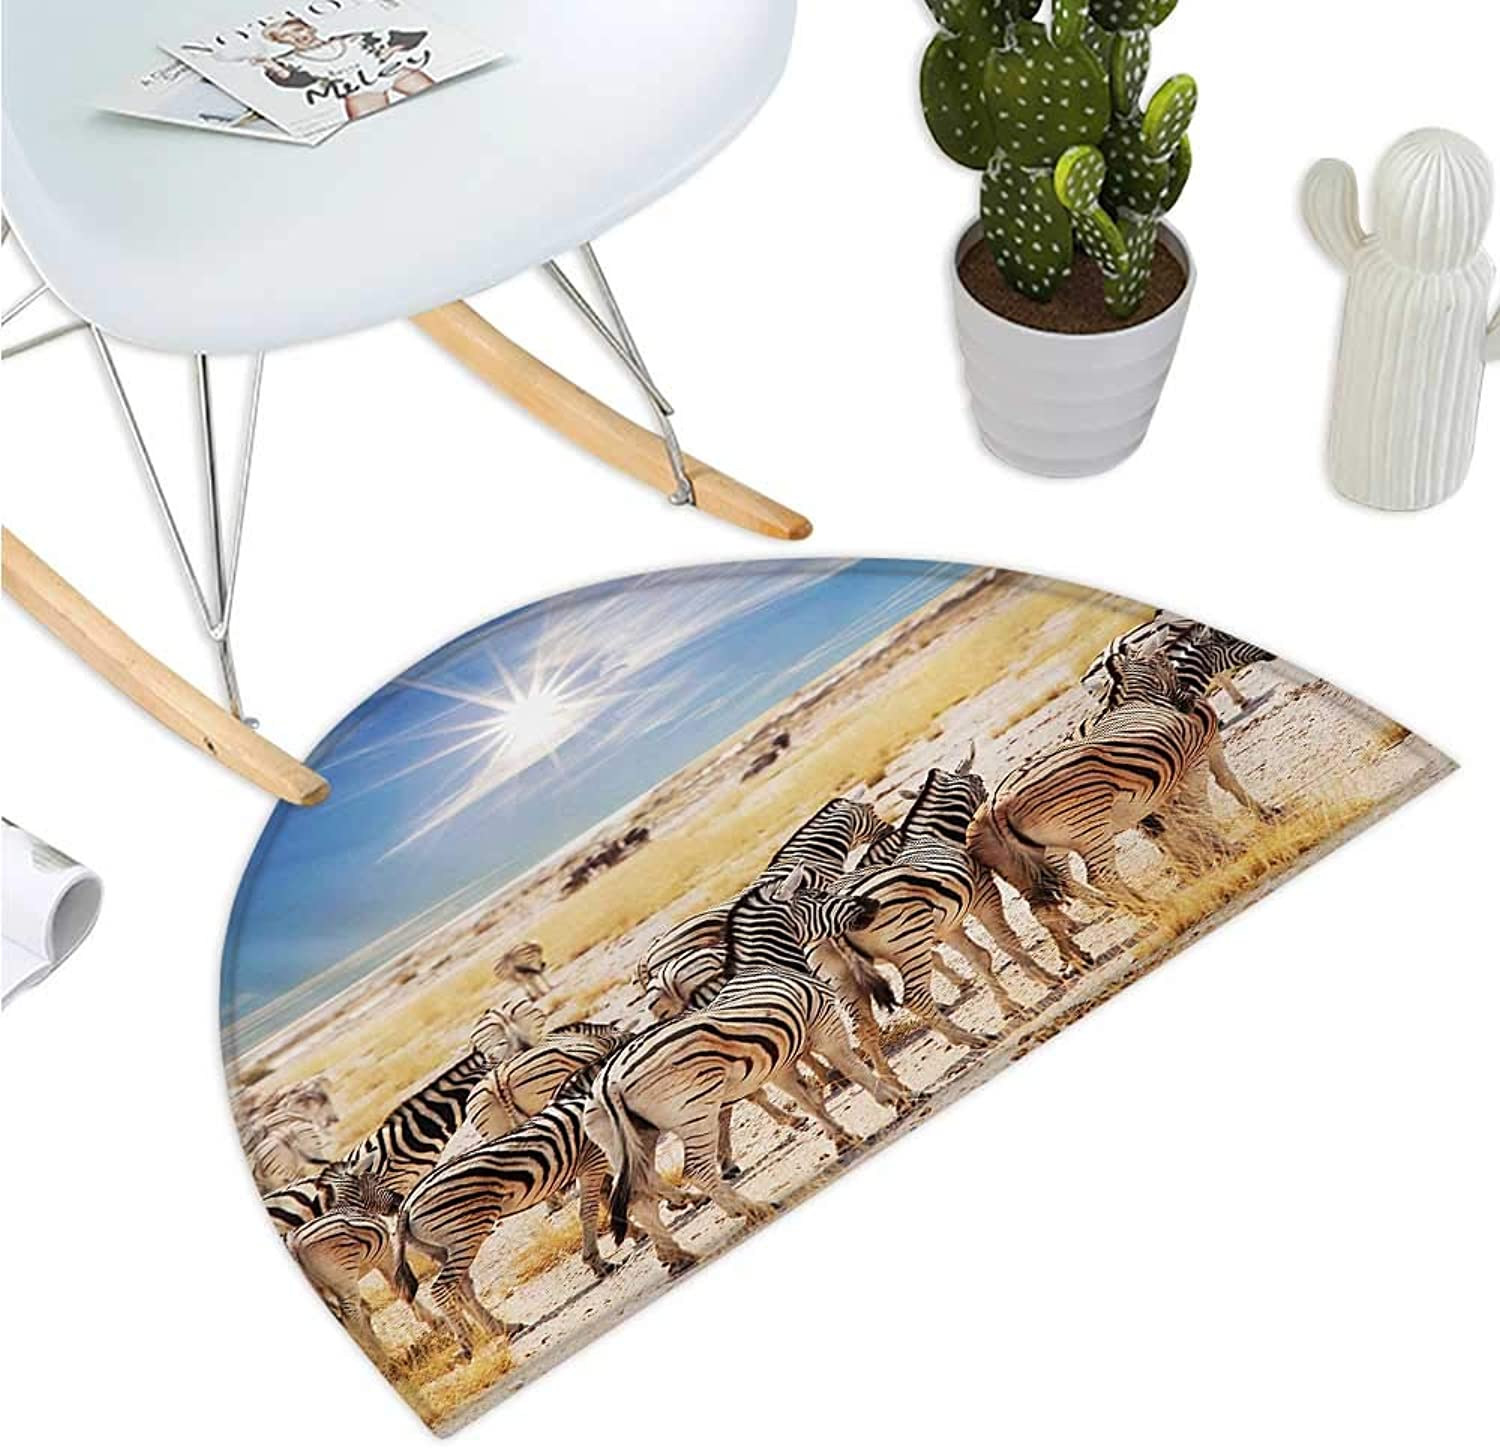 Africa Semicircular Cushion Zebras in Savannah Desert Waterhole on Hot Day Africa Safari Adventure Land Print Entry Door Mat H 39.3  xD 59  Multicolor